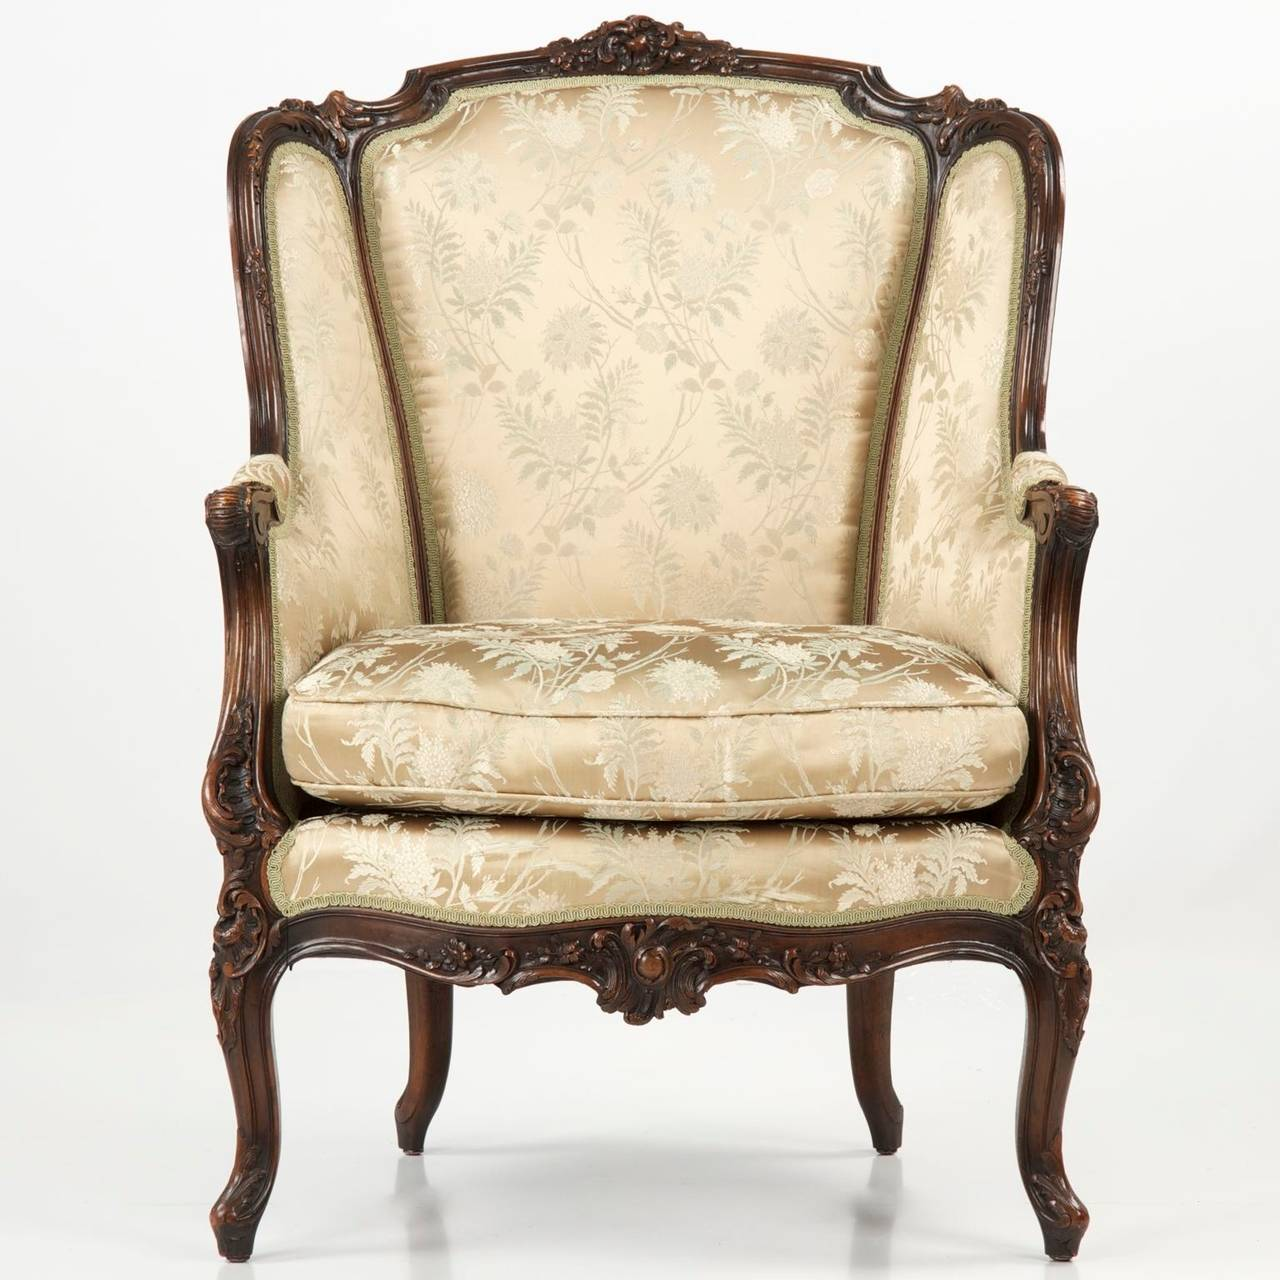 Antique bergere chair - 19th Century Rococo Revival Antique Bergere Armchair In Louis Xv Taste 2